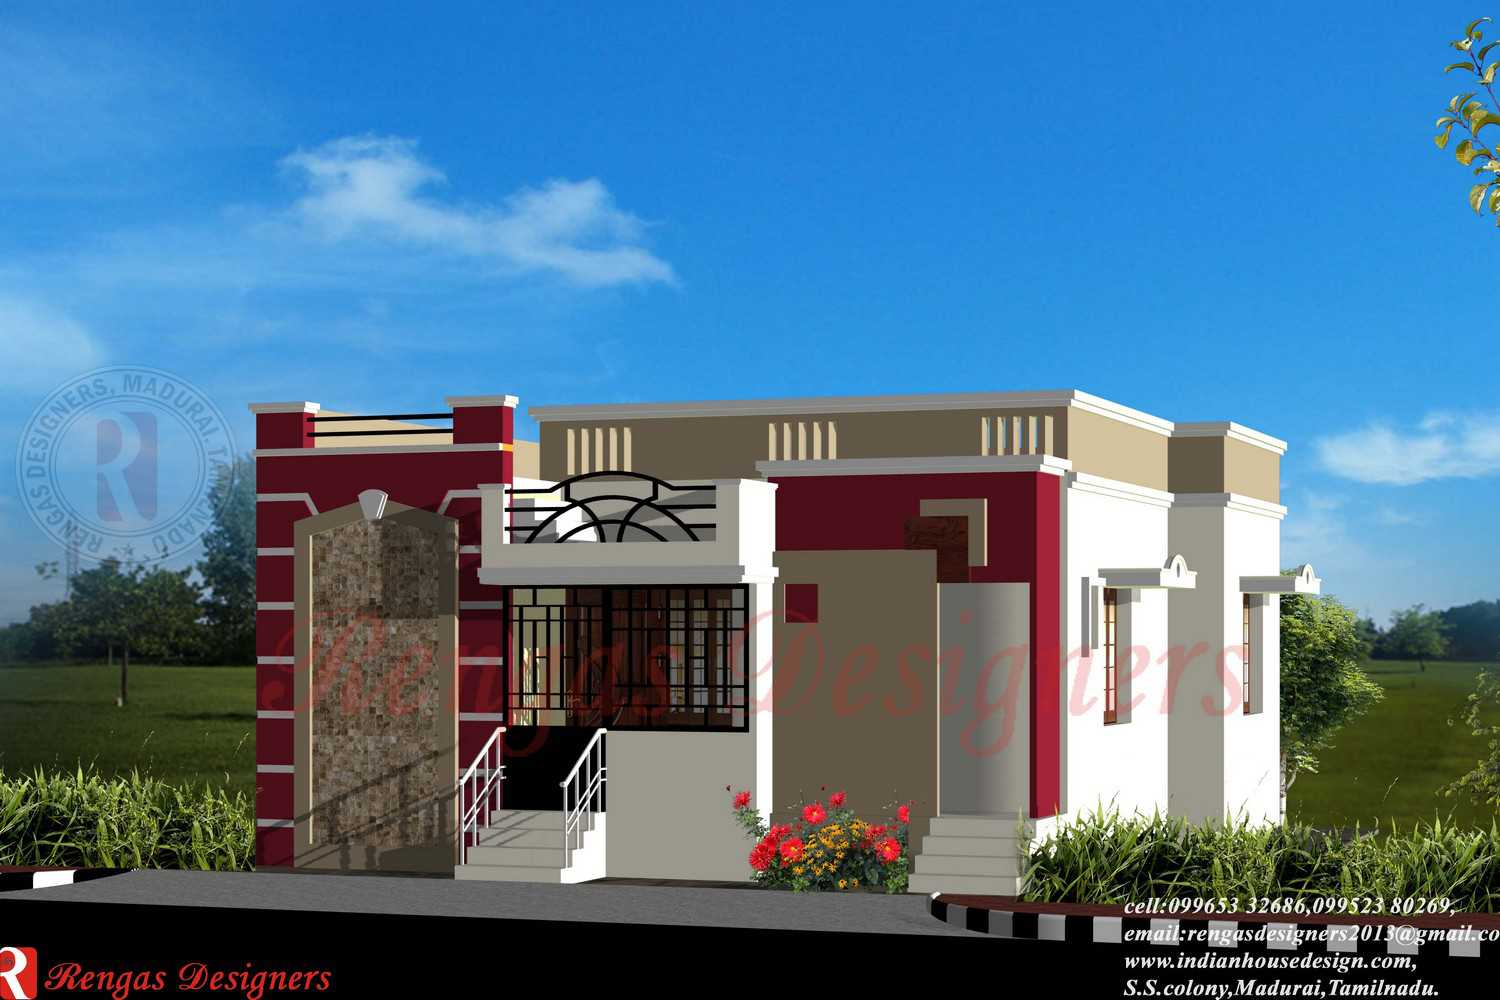 Indian House Design Small Budget Designs Plans 34888